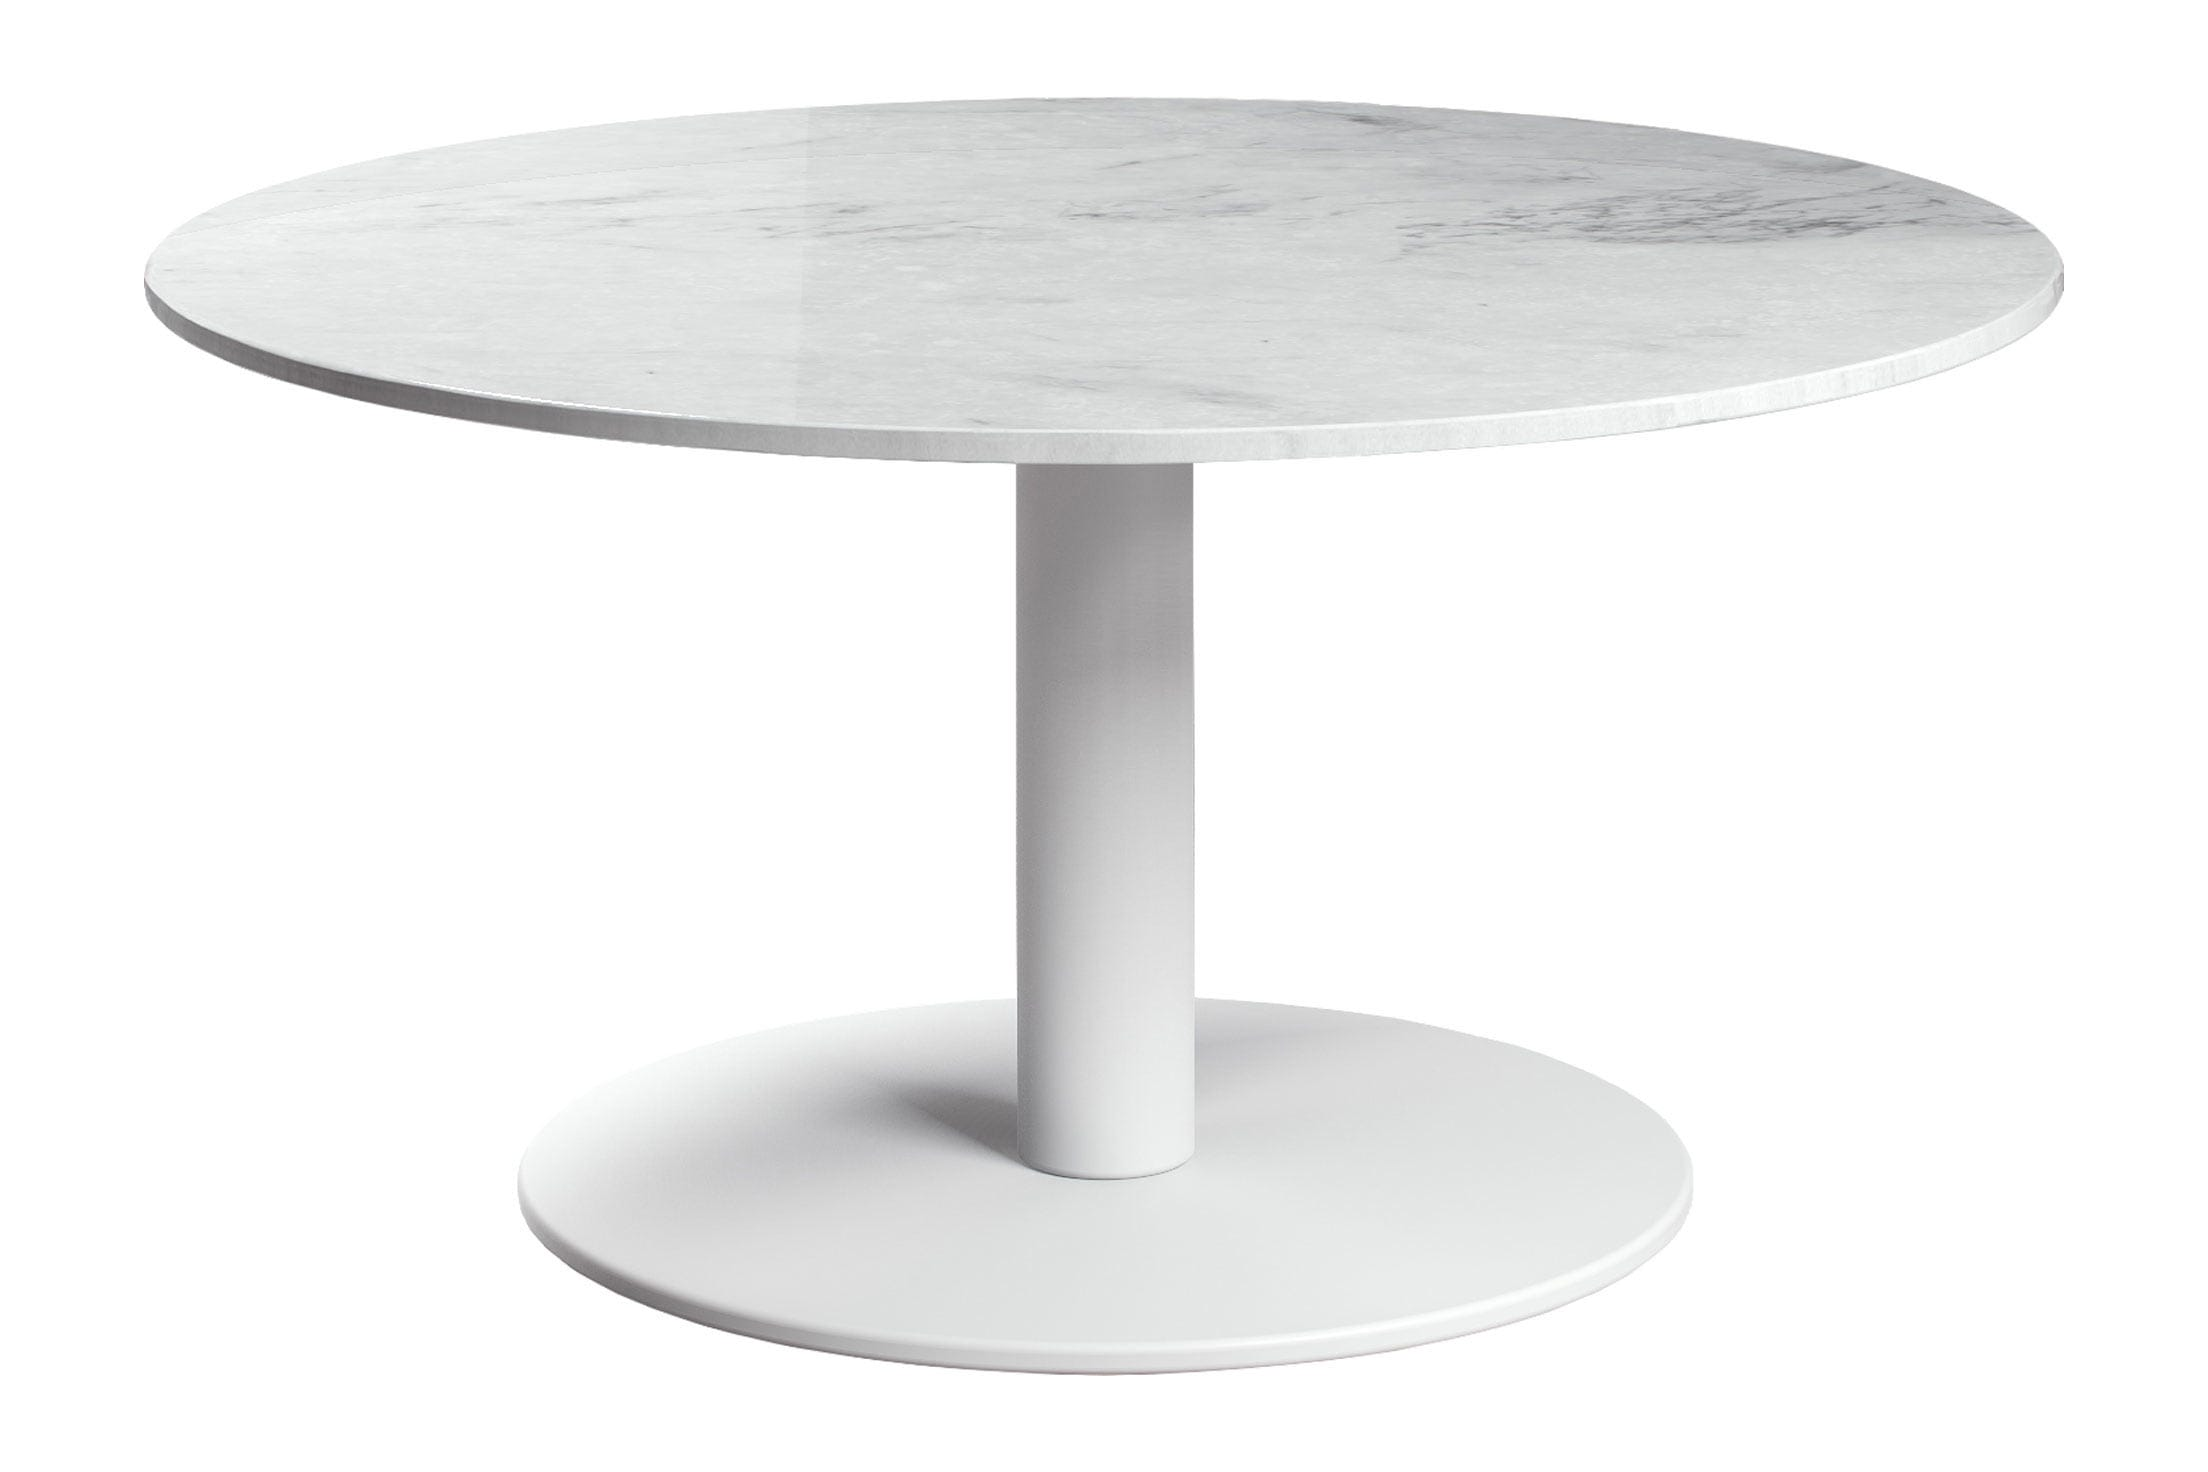 Bleecker High Coffee Table White Marble by Modloft